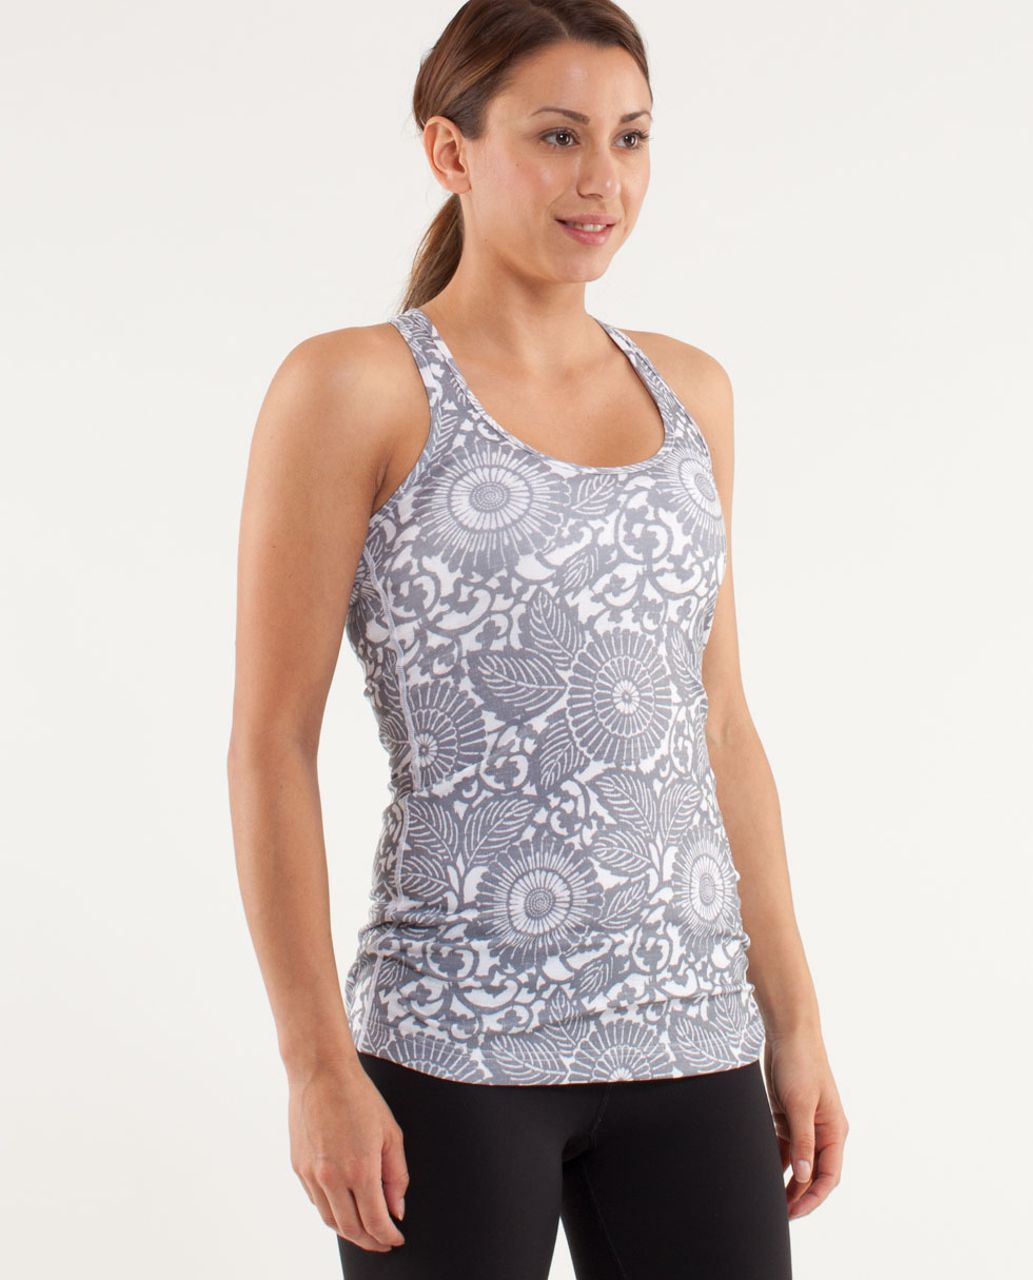 Lululemon Cool Racerback - Beachy Floral White Fossil